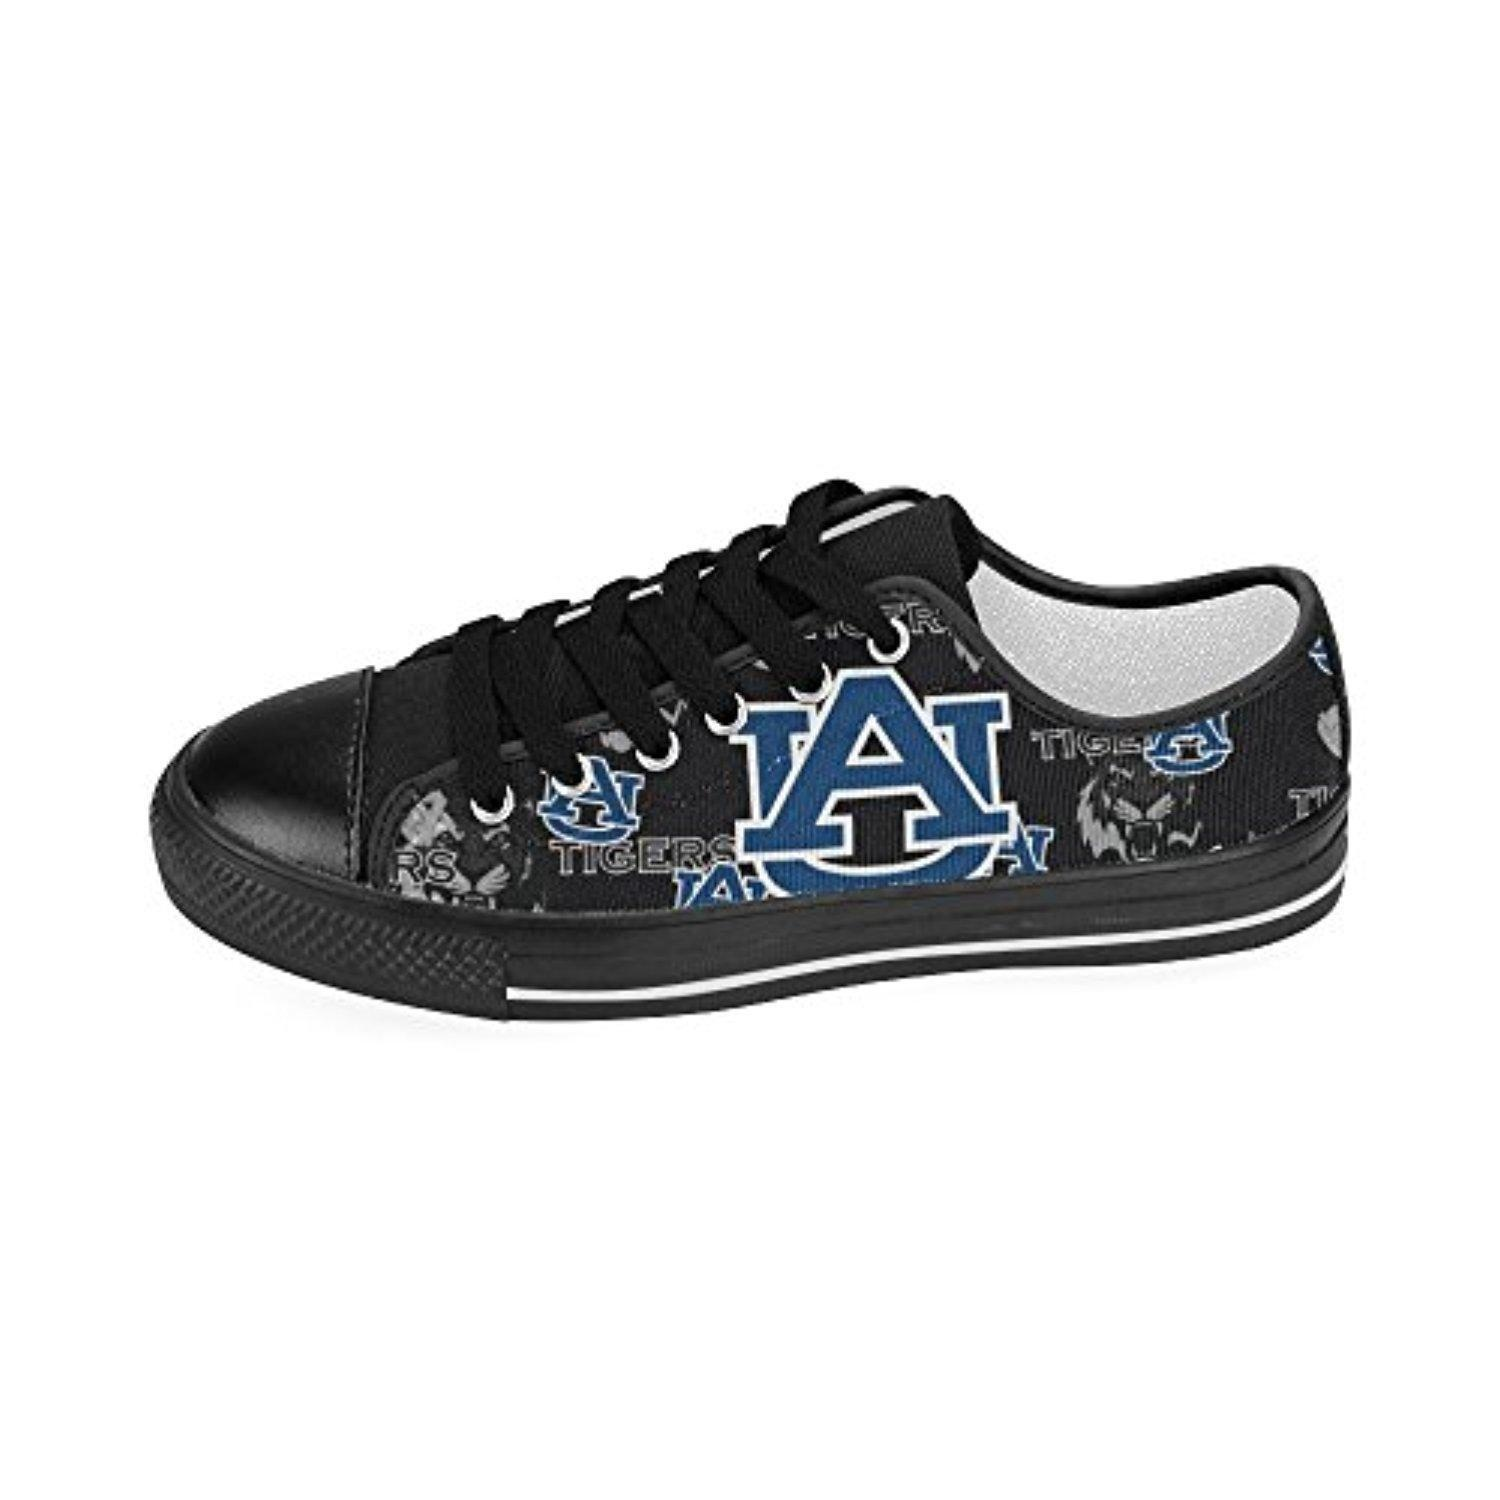 H-MOE Art Ncaa Auburn Tigers Men's Canvas Shoes Low-top Lace-up Breathable Sneakers,Black